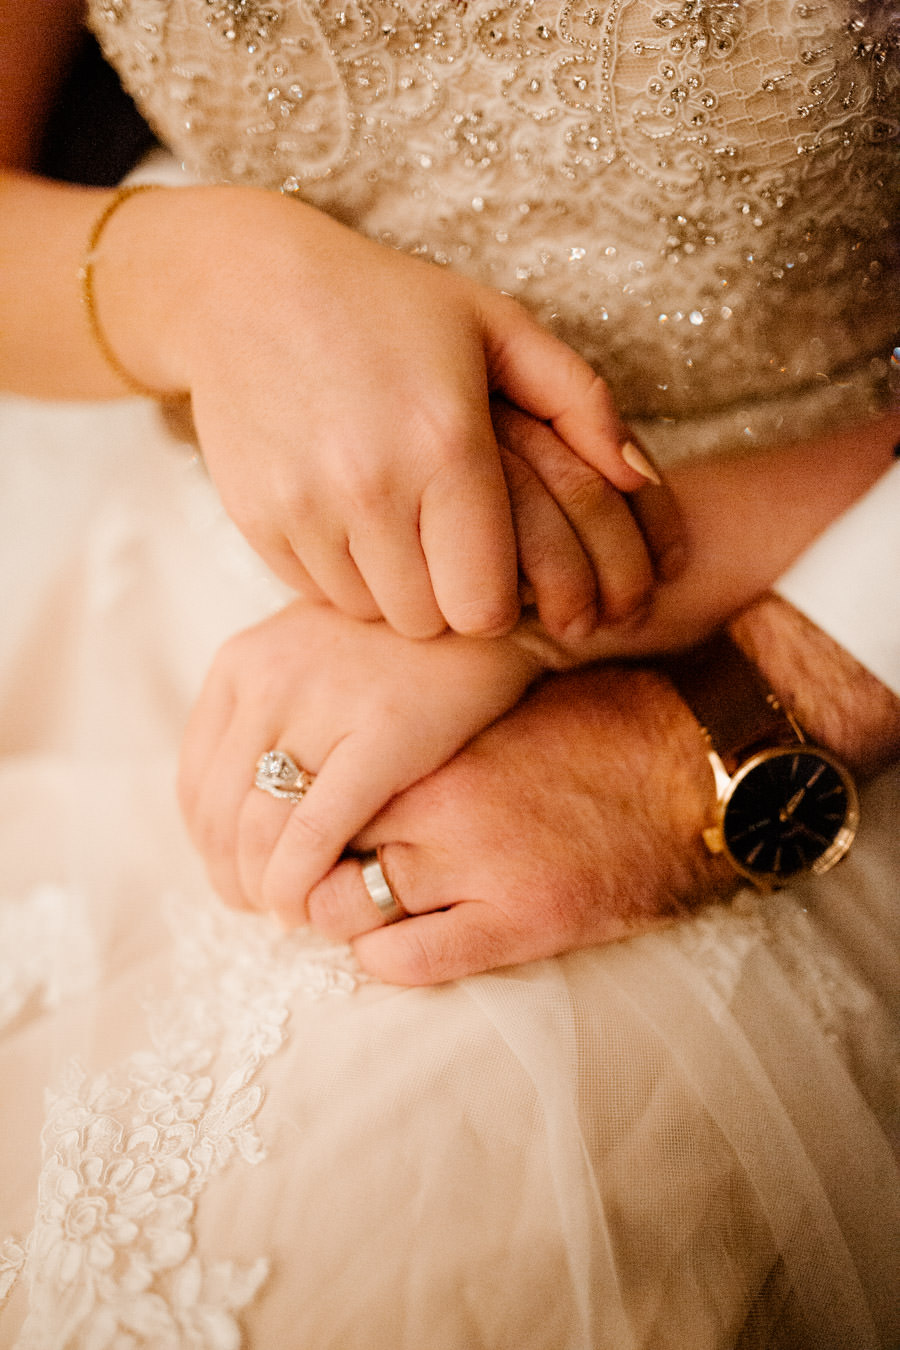 reception - moments in between wedding rings and newlyweds hands